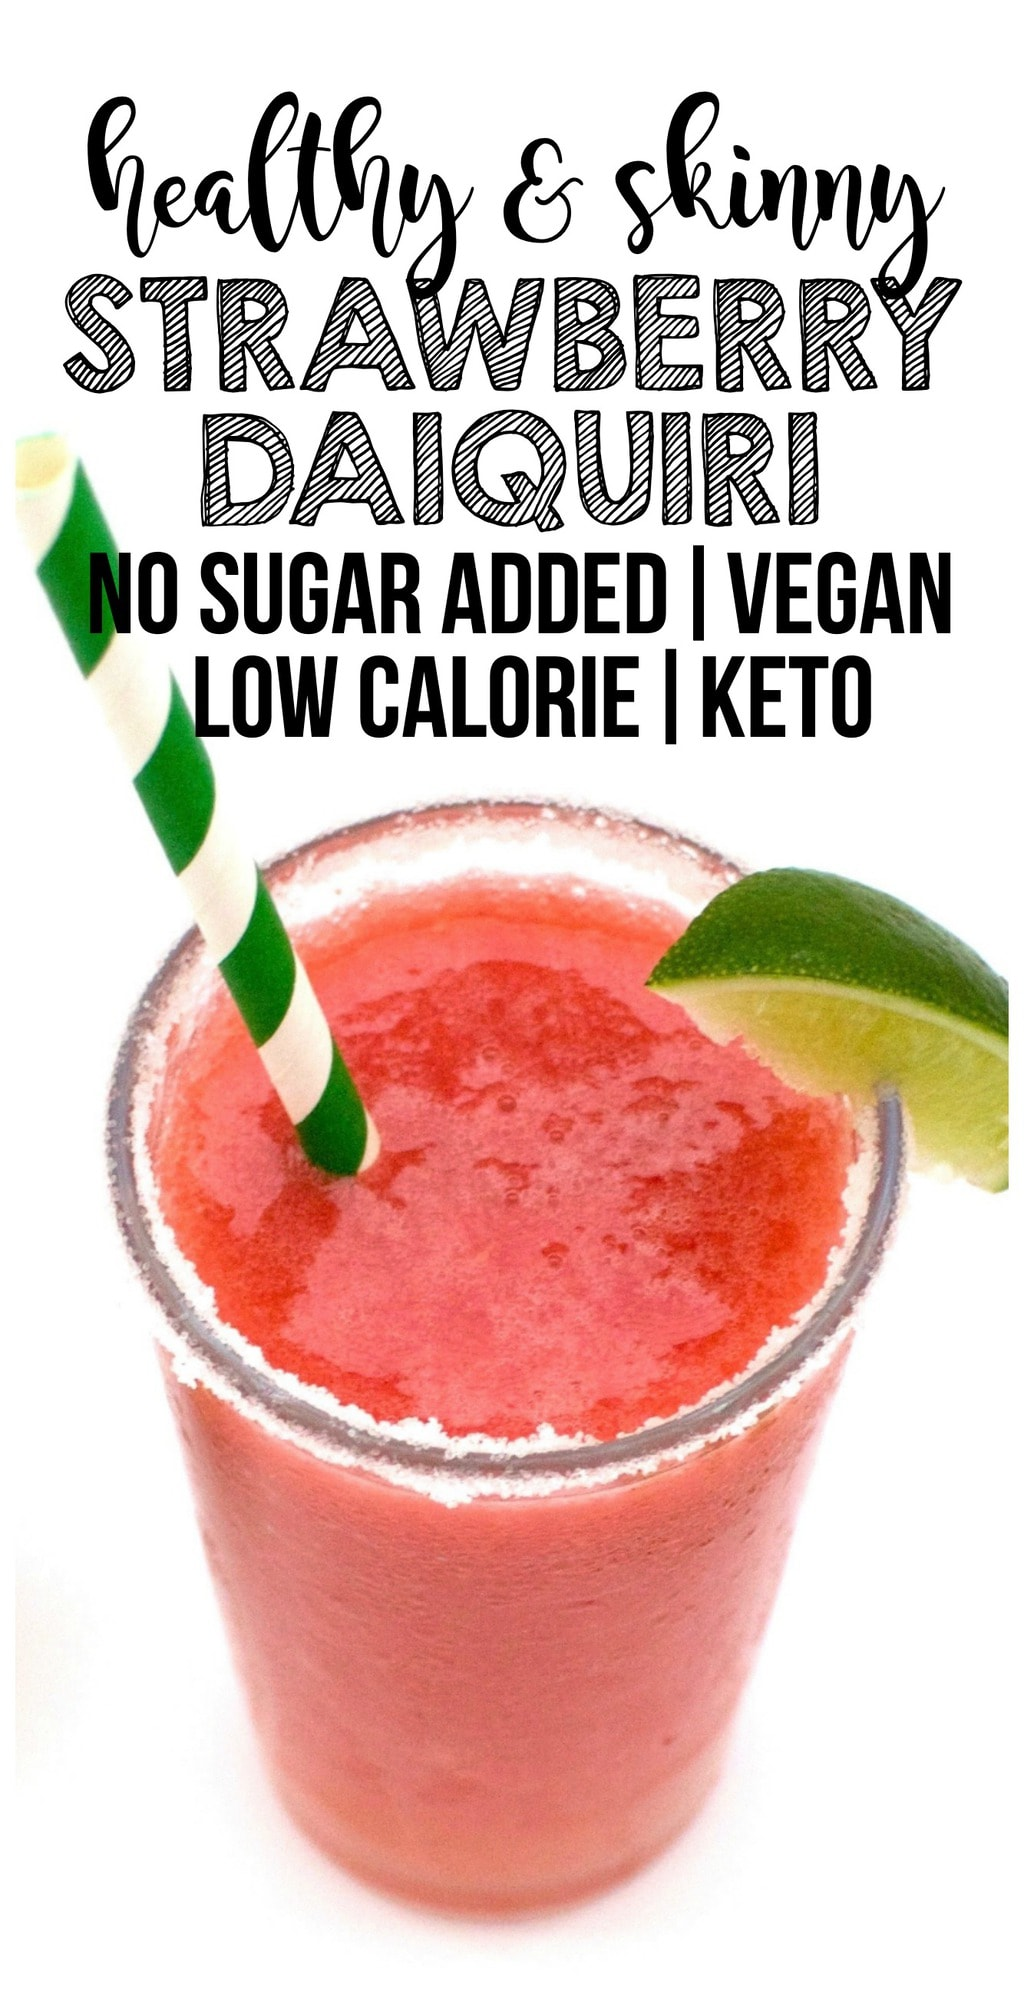 This Keto Strawberry Daiquiri is AMAZING! It's perfectly refreshing and sweet but contains no added sugar. Vegan, low-carb, gluten-free, and low-calorie - the perfect summertime cocktail!